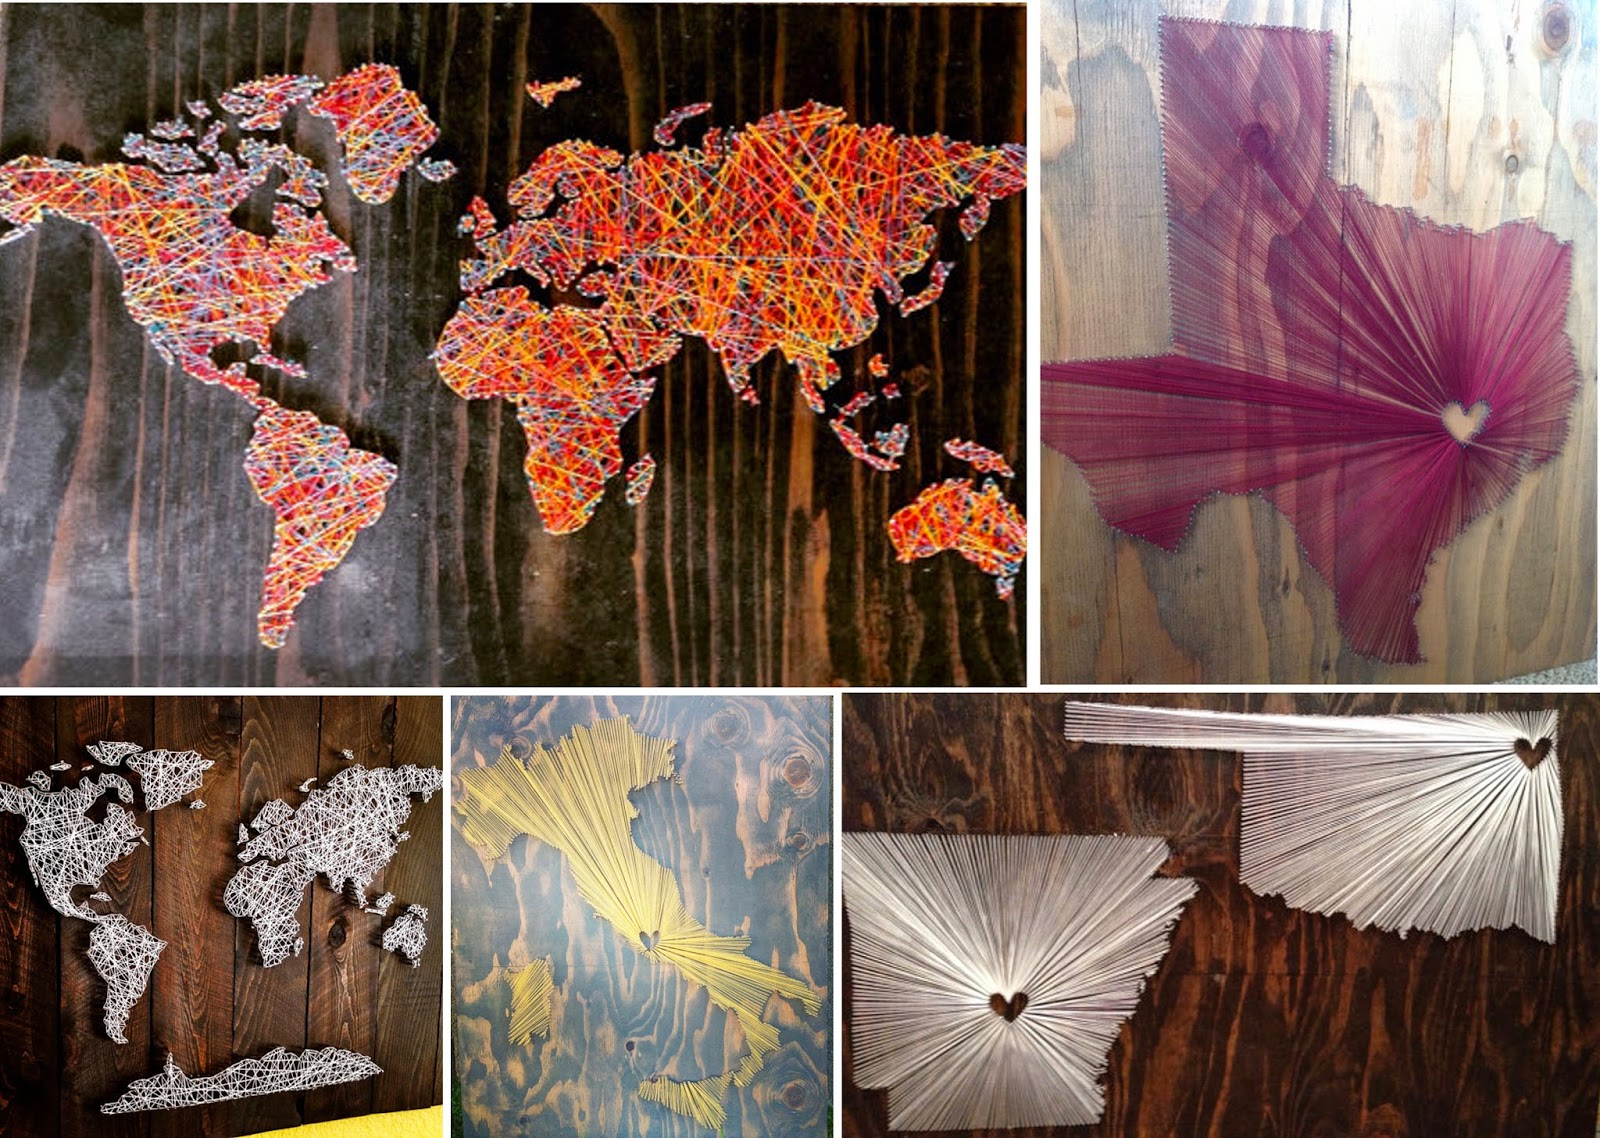 Diy world map string art home design to make a string art world map artists work is beau gran monde s shabby chic world map which as the name suggests gumiabroncs Choice Image